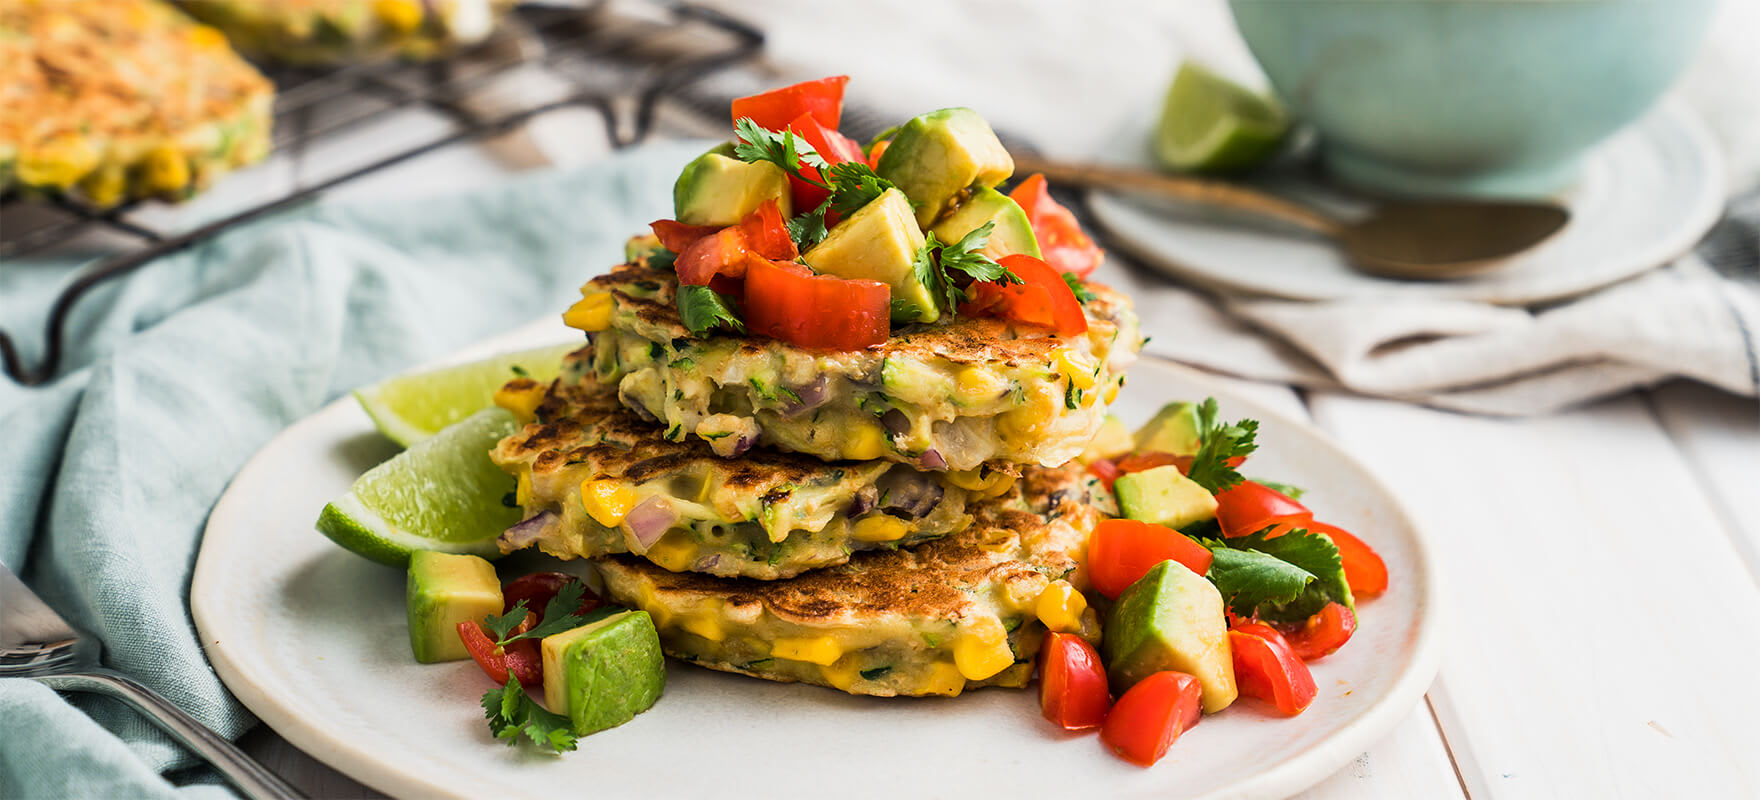 Corn & courgette fritters image 1